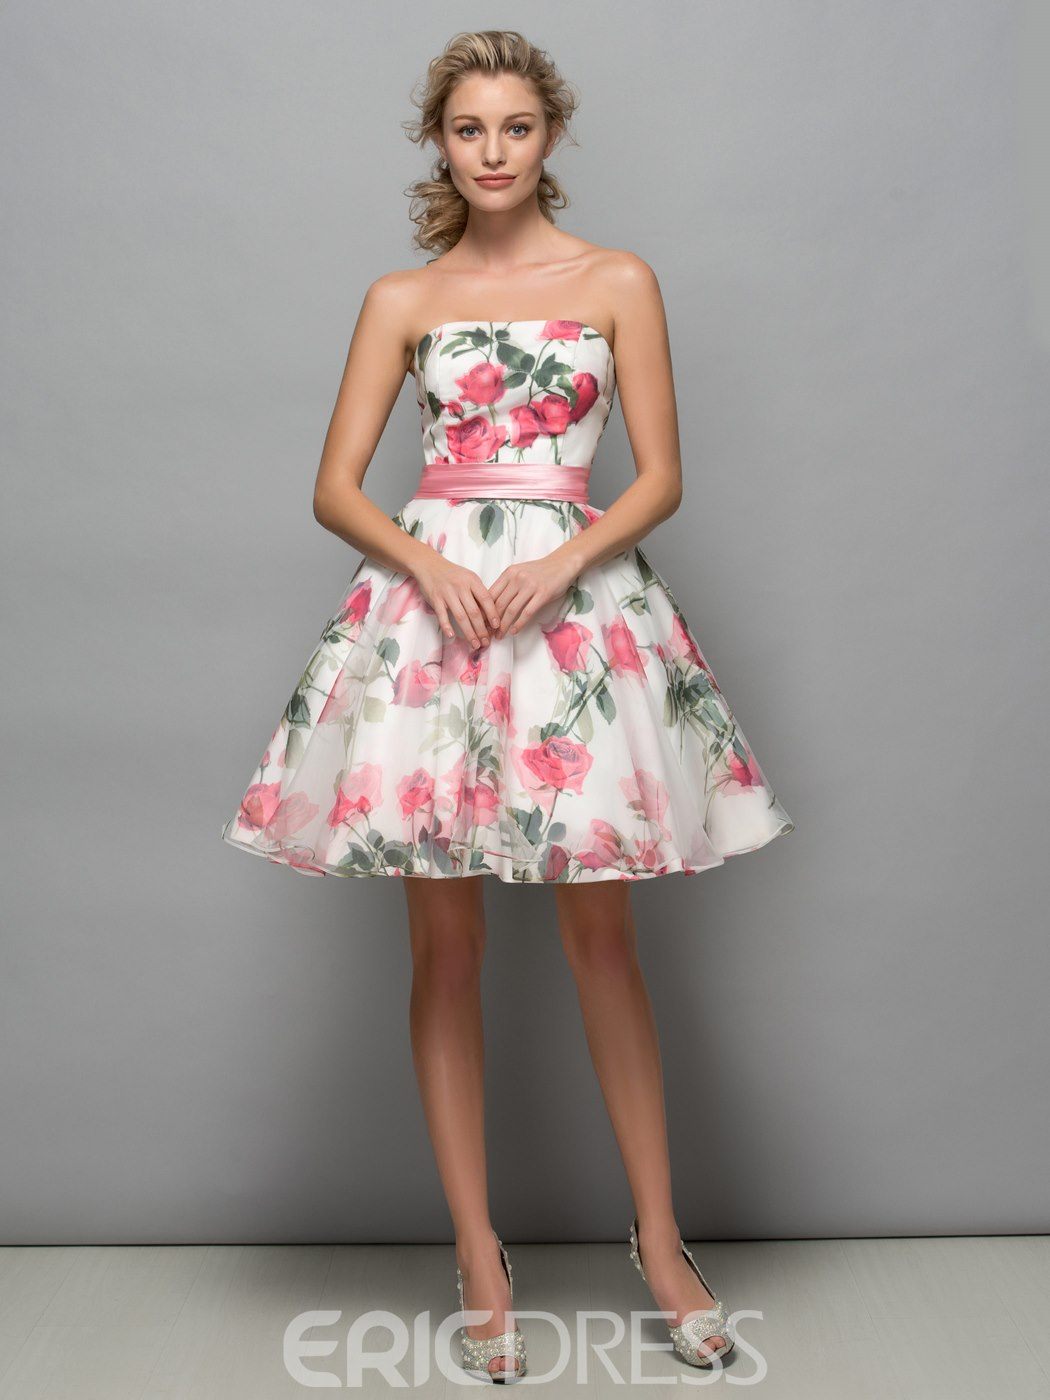 Ericdress Strapless Sashes Print Cocktail Dress